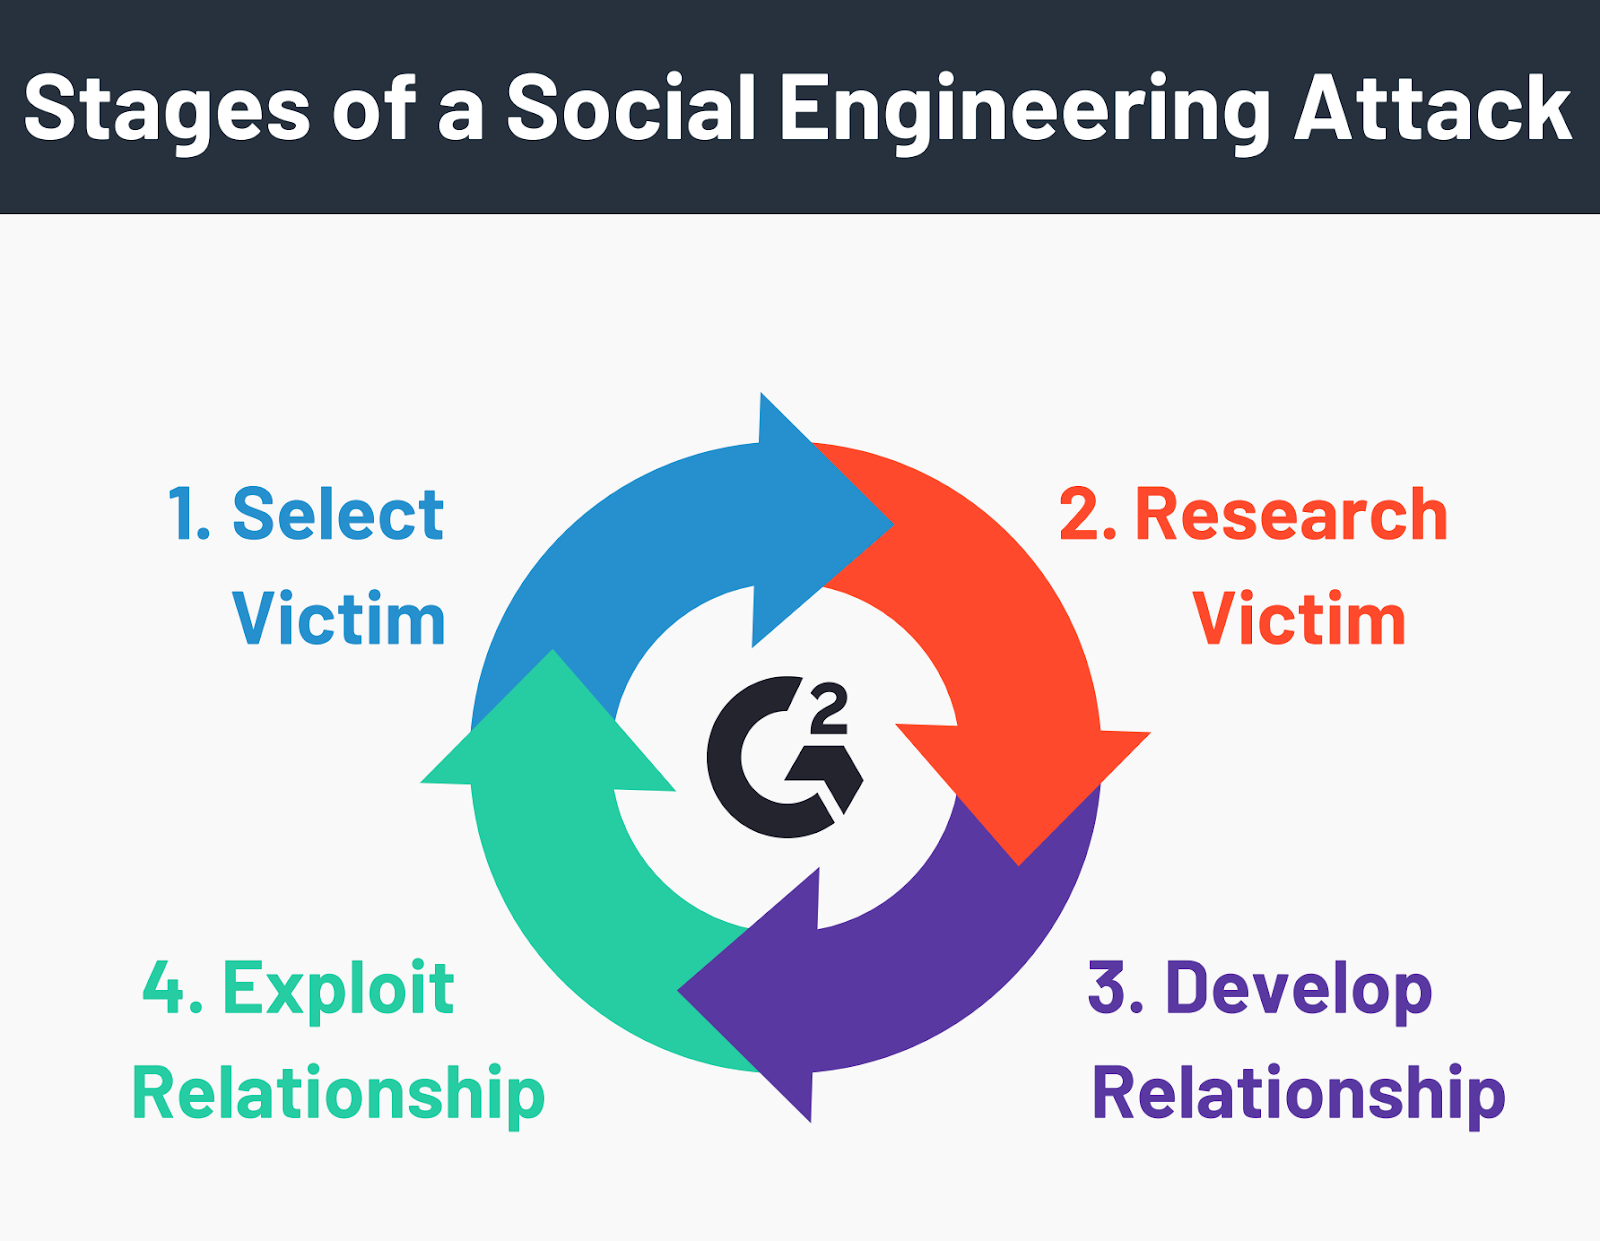 Stages of a Social Engineering Attack